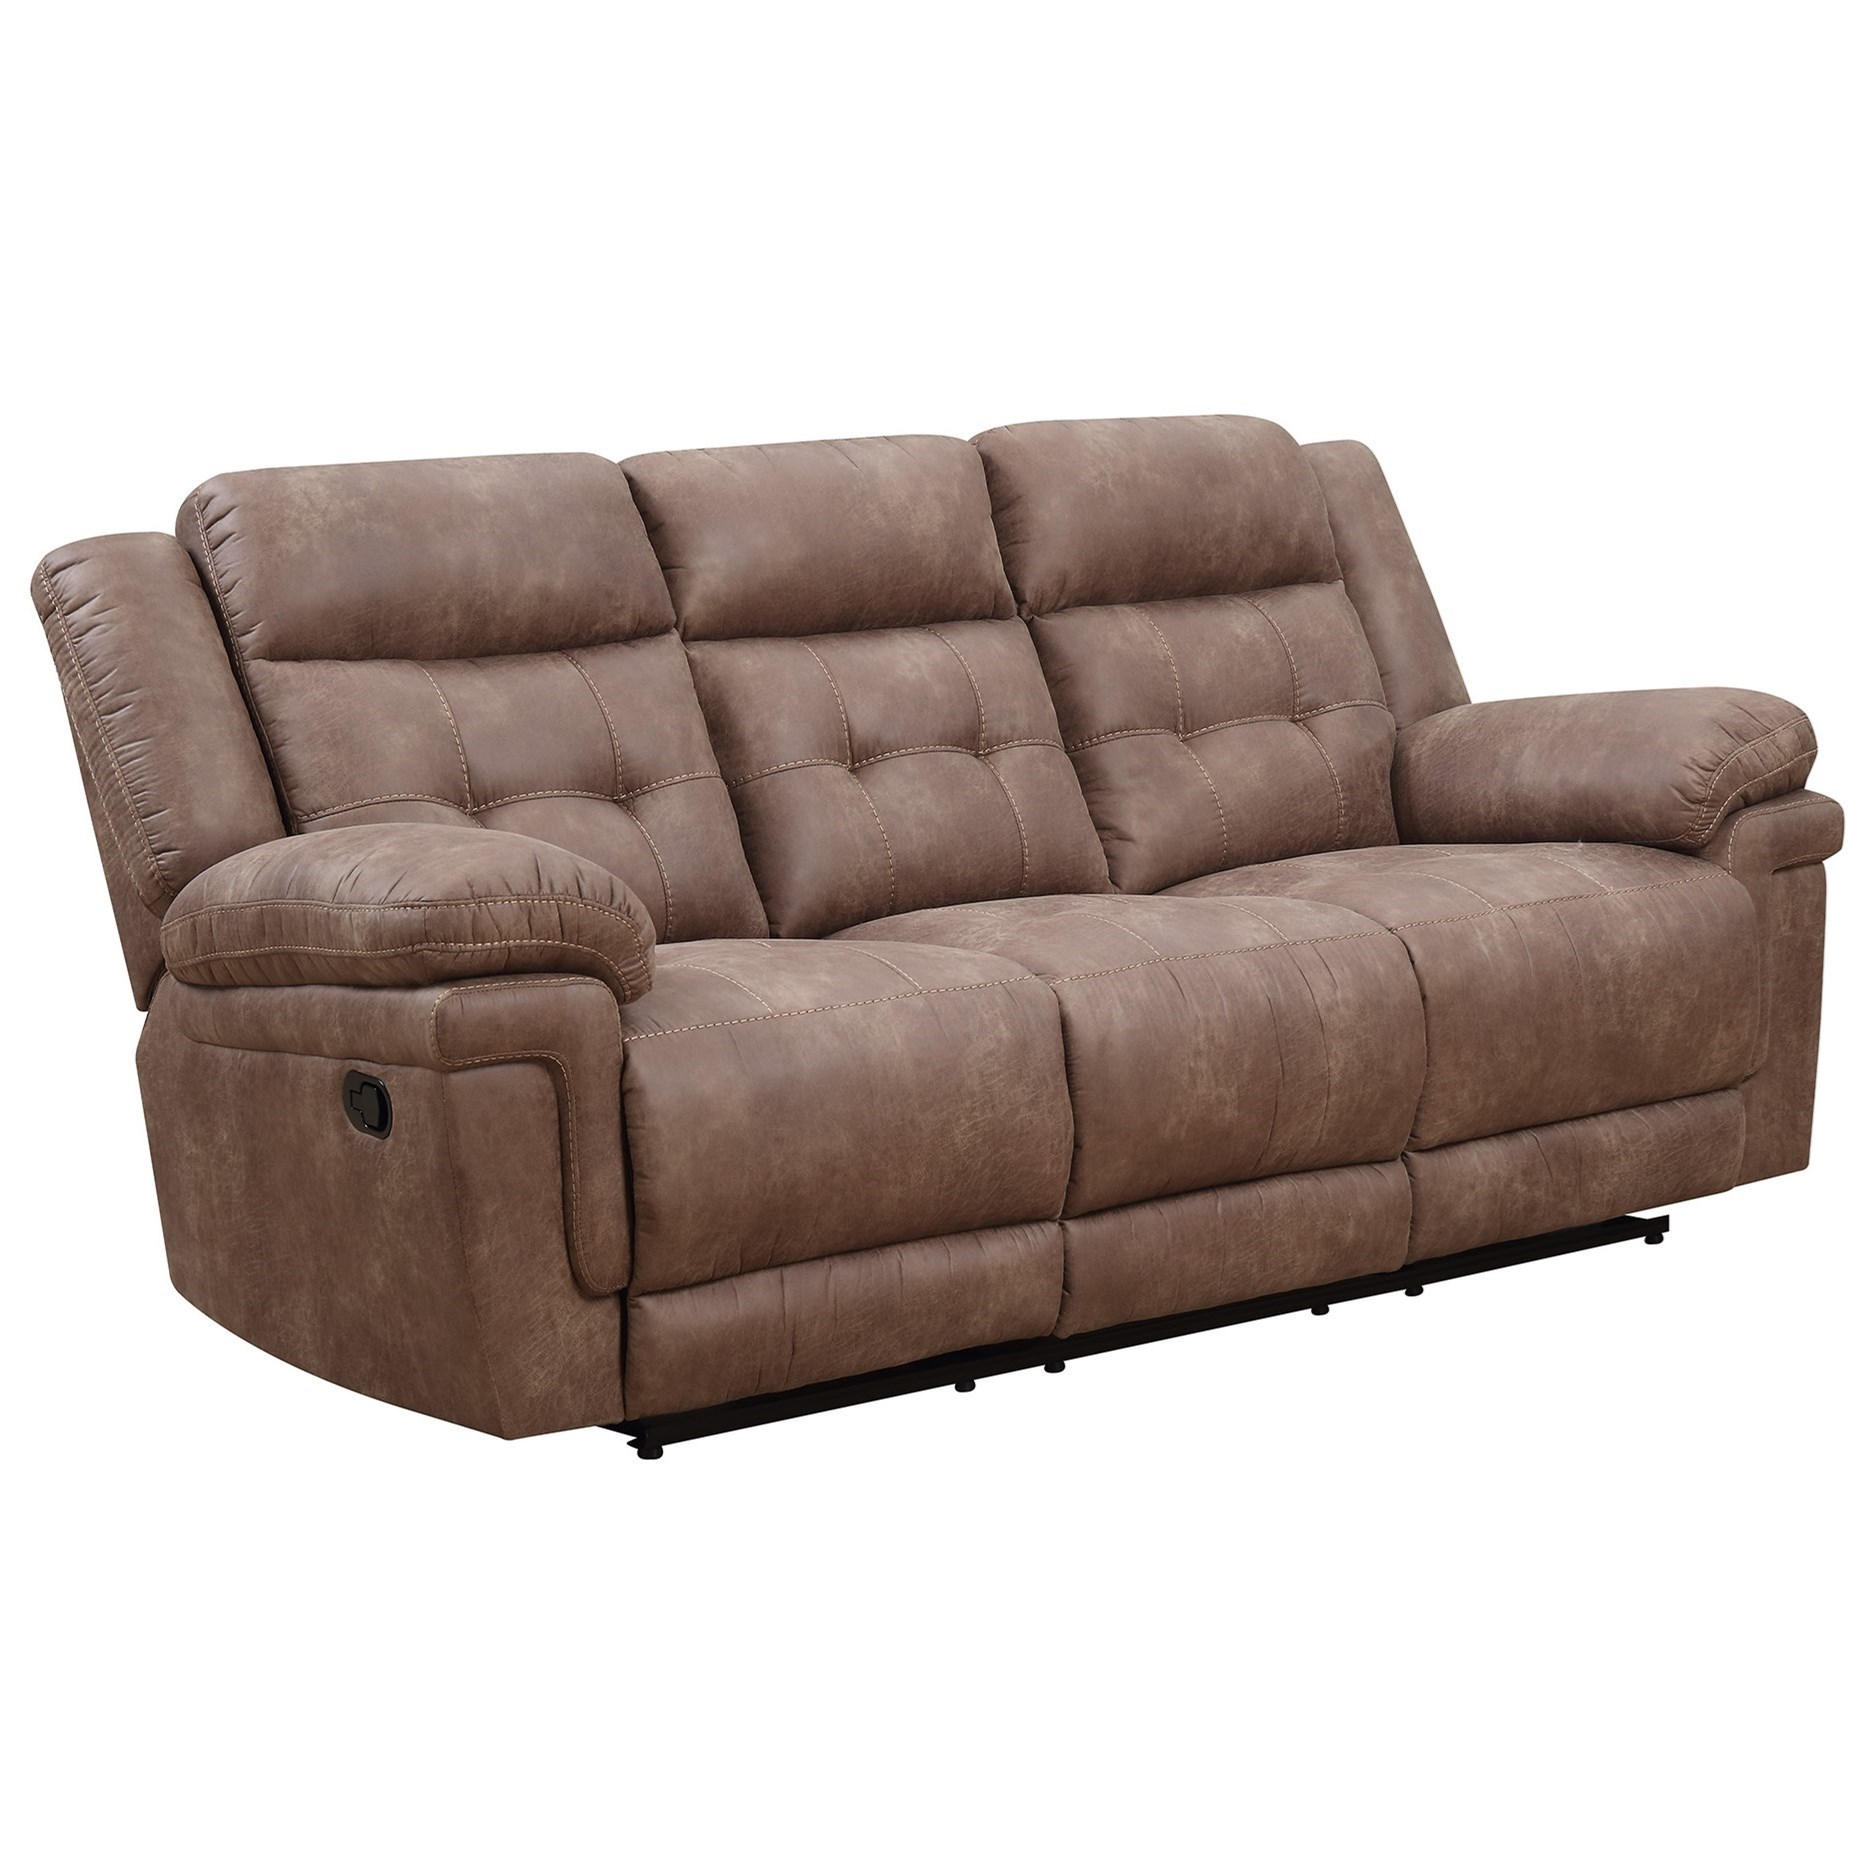 Steve Silver Anthony Reclining Sofa - Item Number: AT850SC